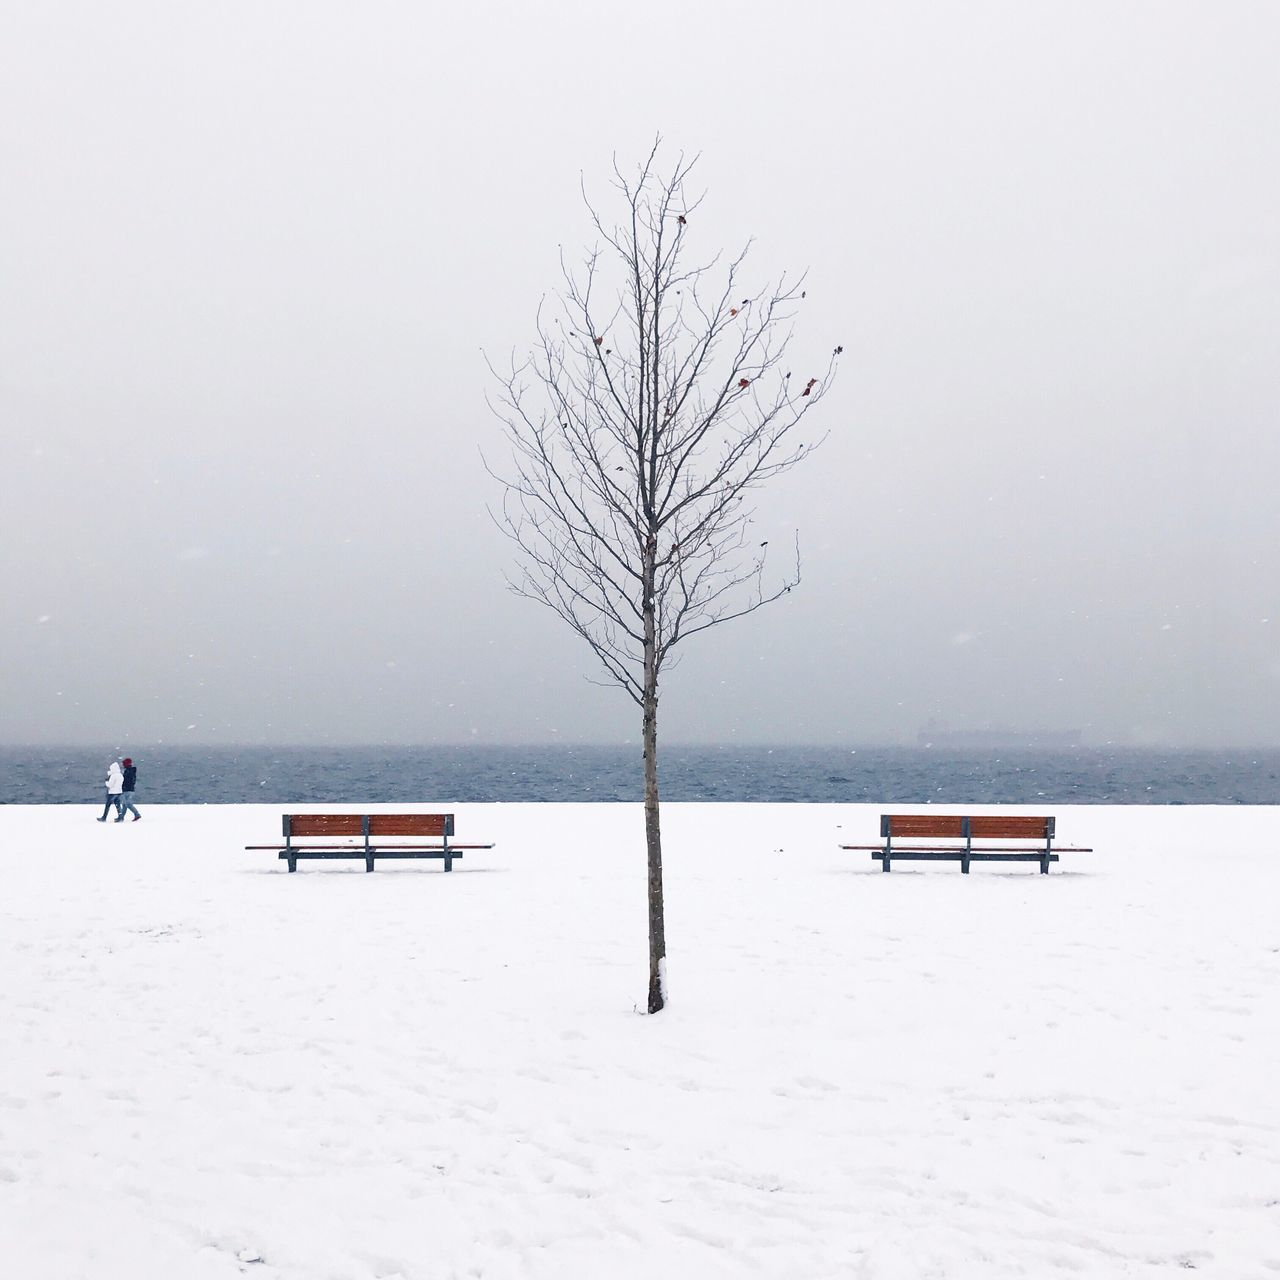 Winter Cold Temperature Snow Nature Bare Tree Weather Beauty In Nature Tranquility Tranquil Scene Tree Branch Outdoors Scenics Frozen No People Sky Day Water